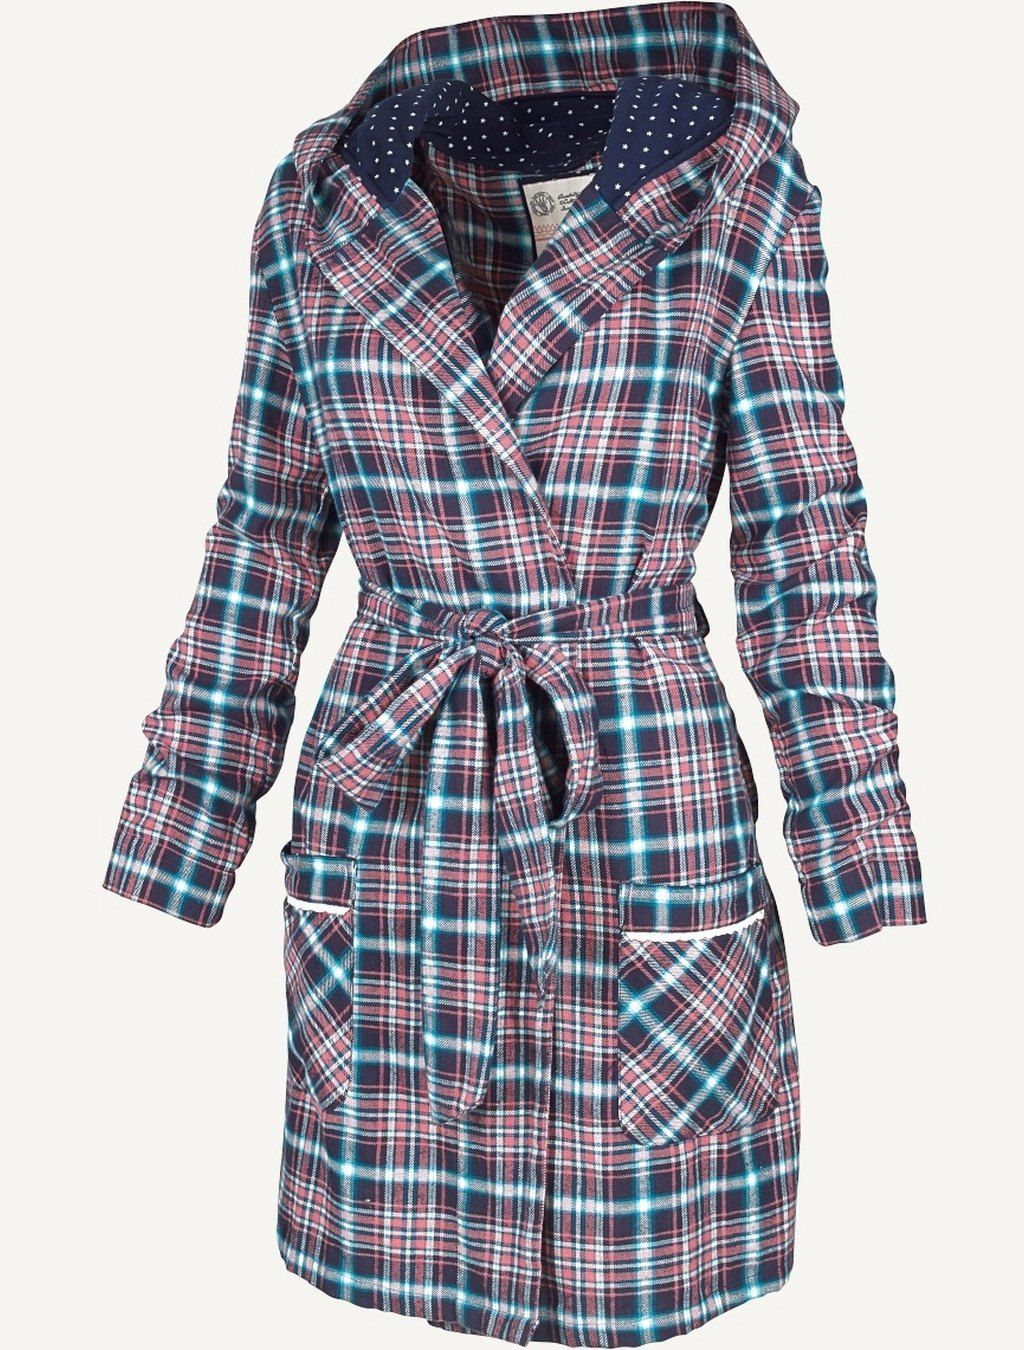 Dressing gown from Fat Face, size Medium   Fashion   Pinterest   Fat ...